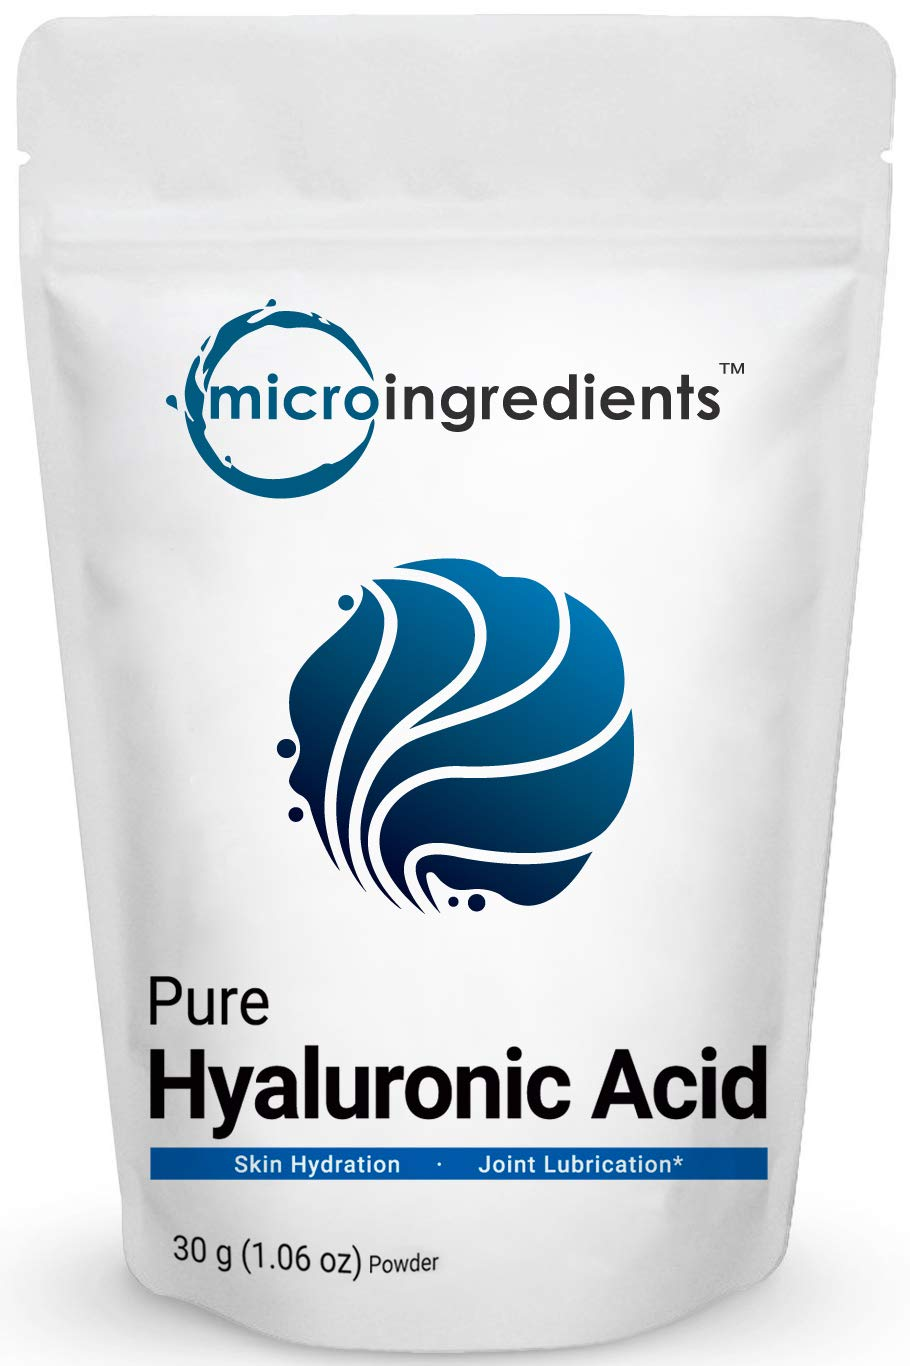 Pure Hyaluronic Acid Serum Powder, Making Anti Aging Serum for Face and Skin, 30 Gram, Powerfully Support Antioxidant, Hydration and Moisture, No GMOs, Vegan by Micro Ingredients